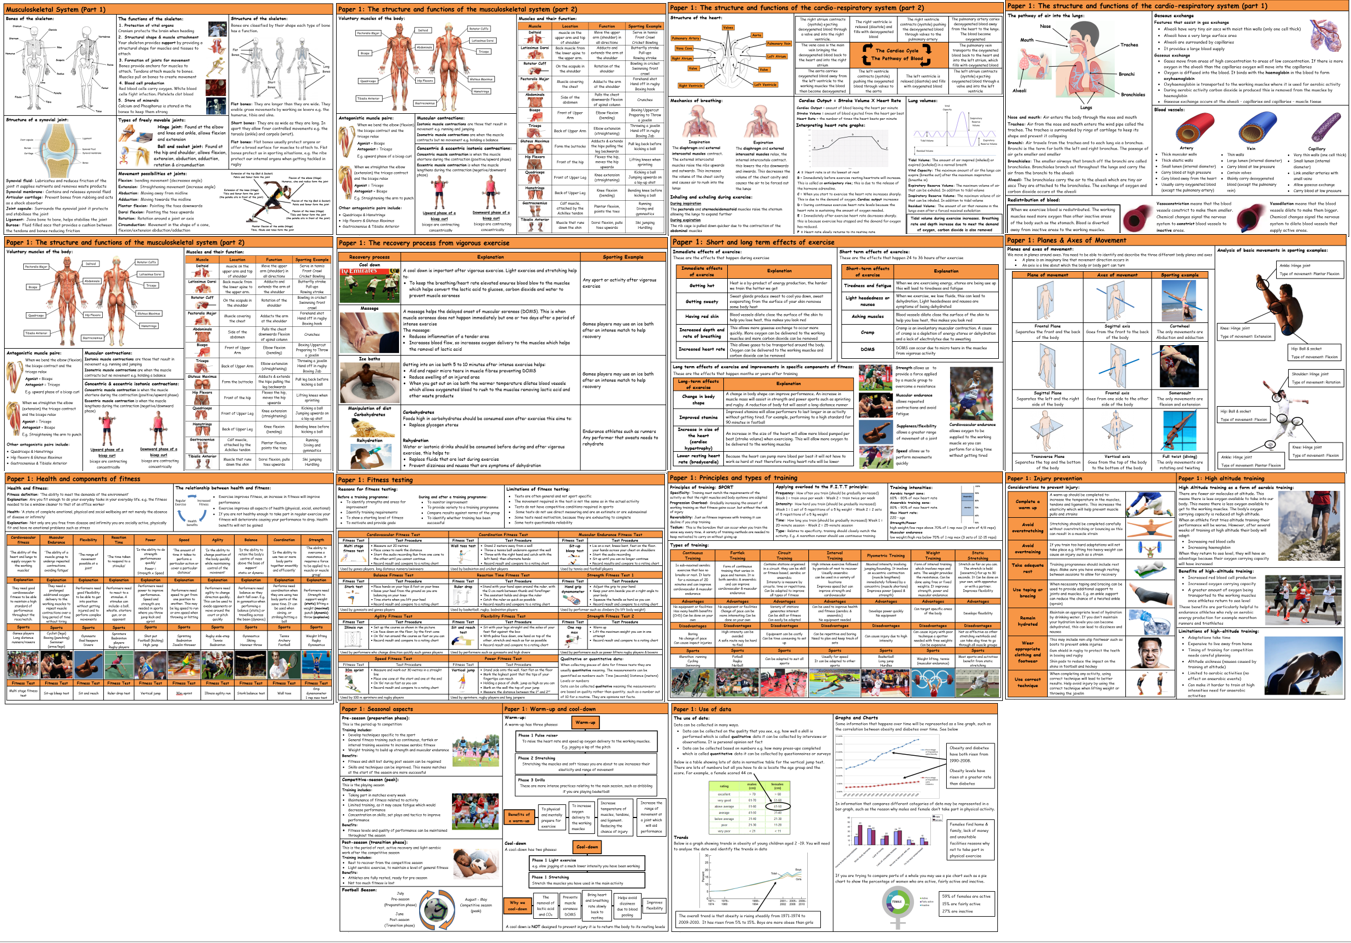 GCSE PE – AQA (9-1) – Complete Paper 1 - Knowledge Organisers/Revision Mats